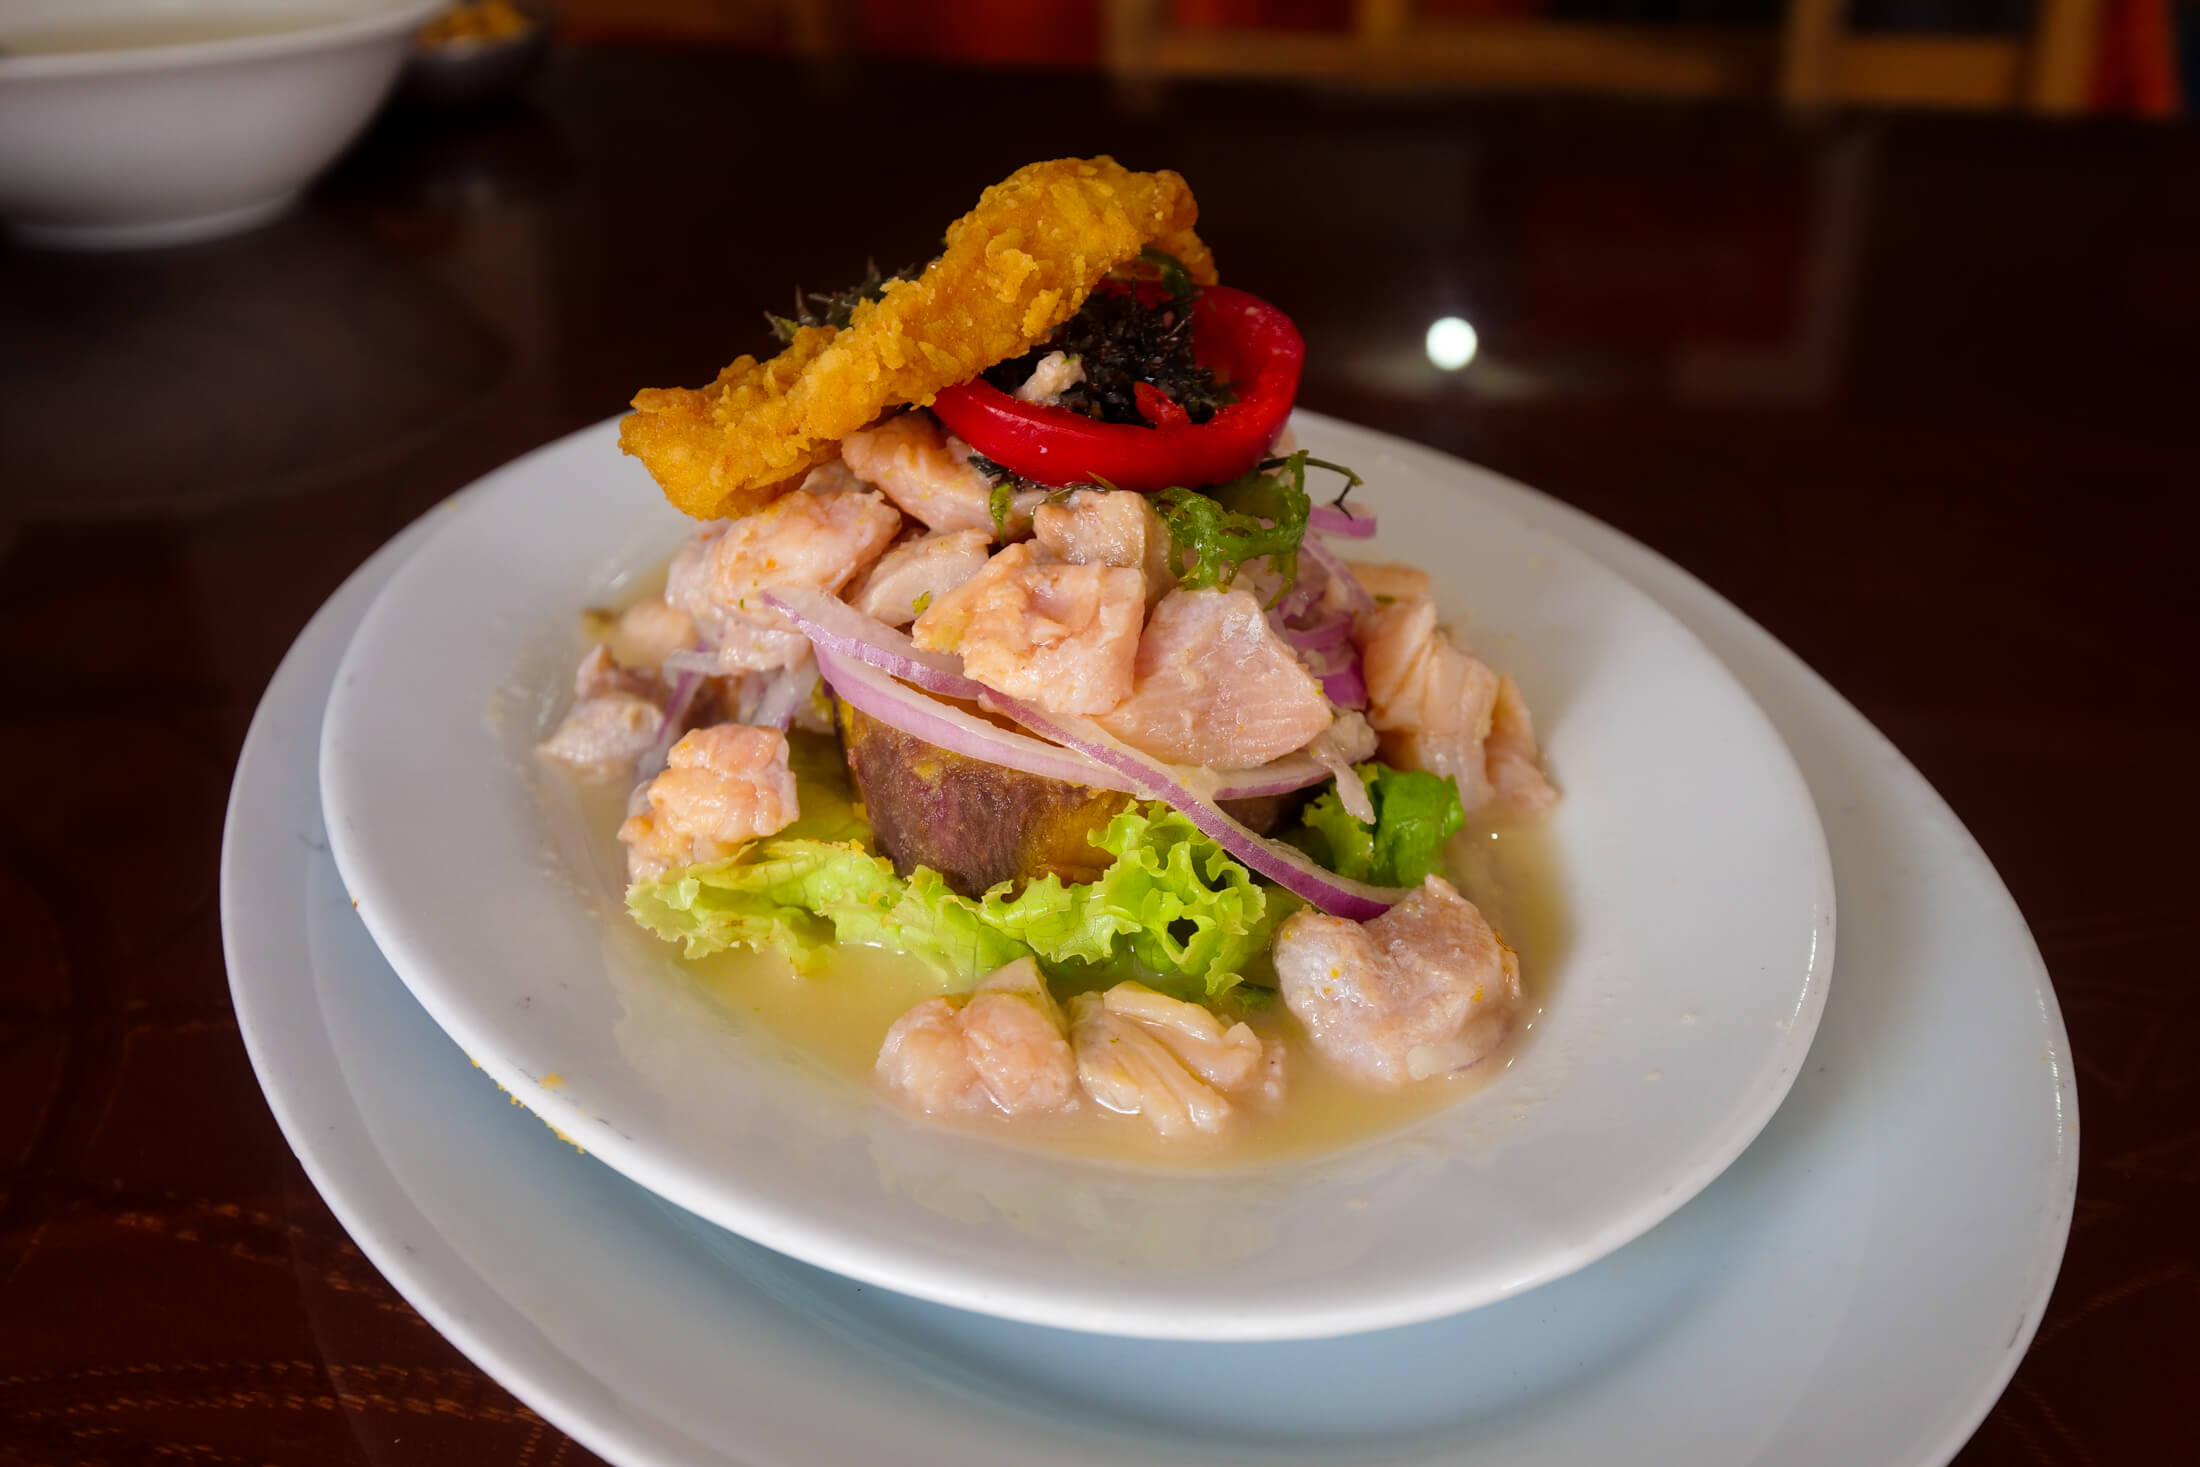 Raw ceviche made with trucha, which is trout, from Cusco's lakes or rivers